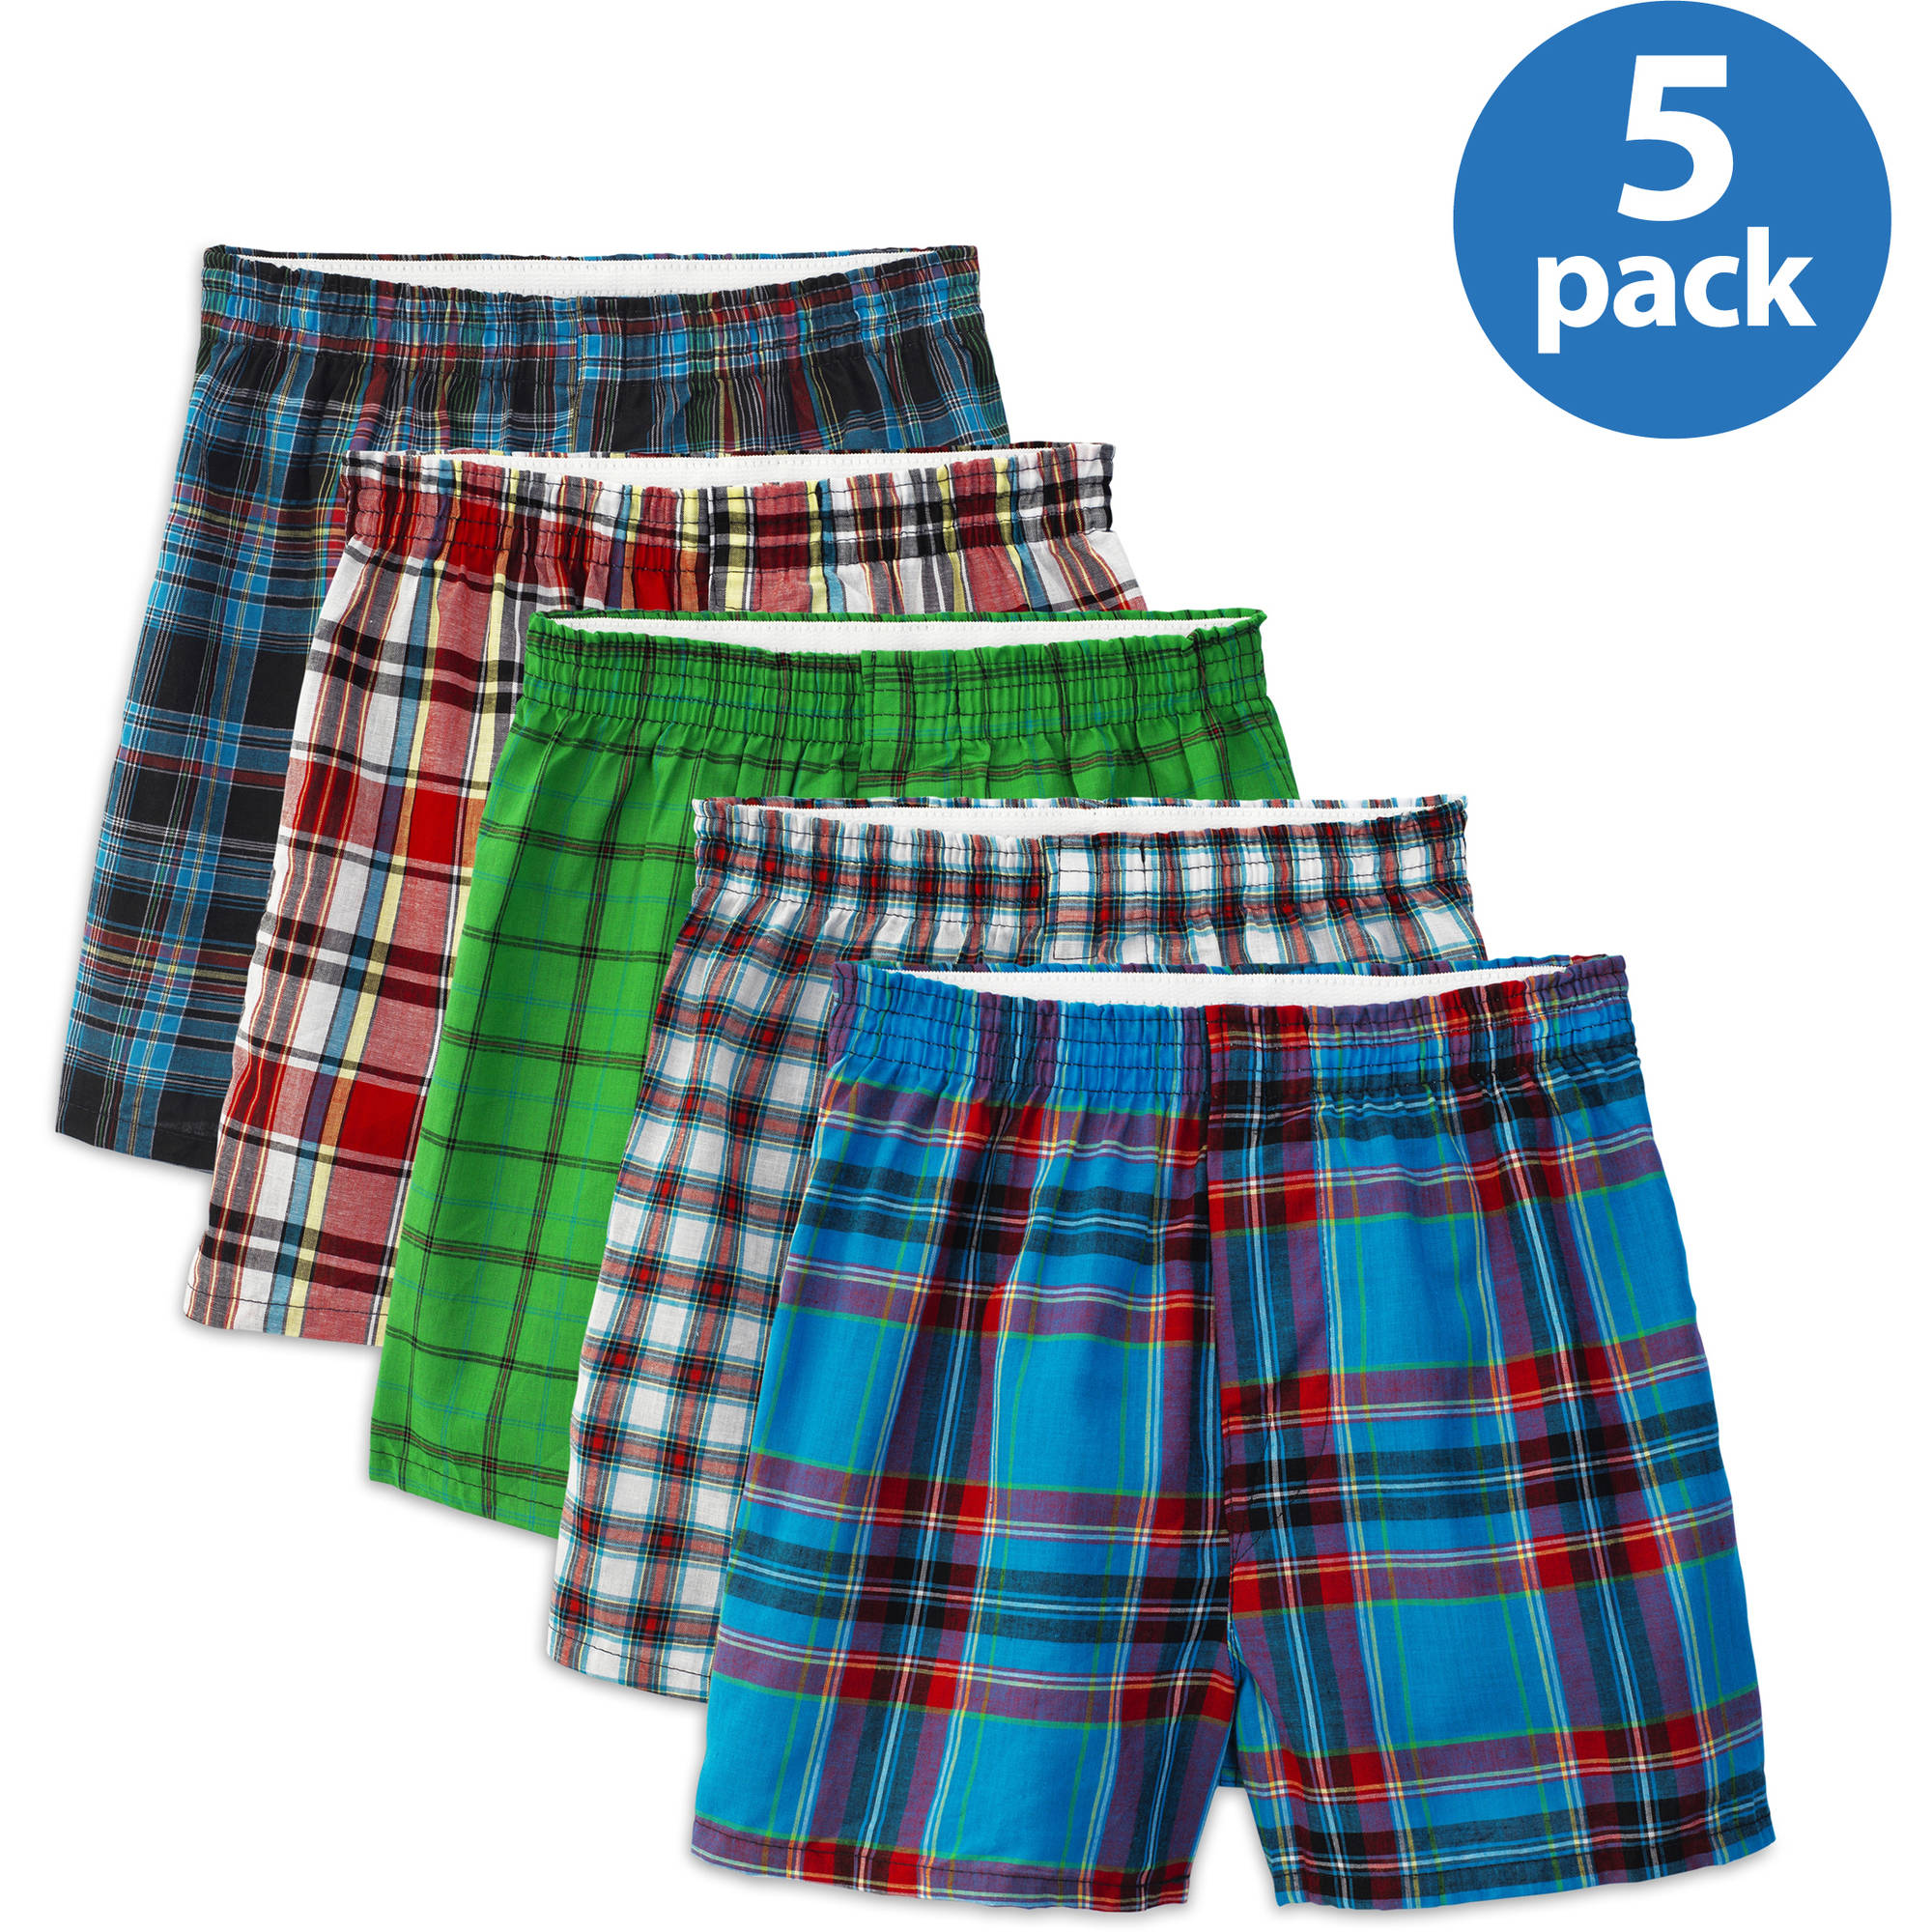 Fruit of the Loom - Boys' Assorted Tartan Plaid Boxers, 5-Pack